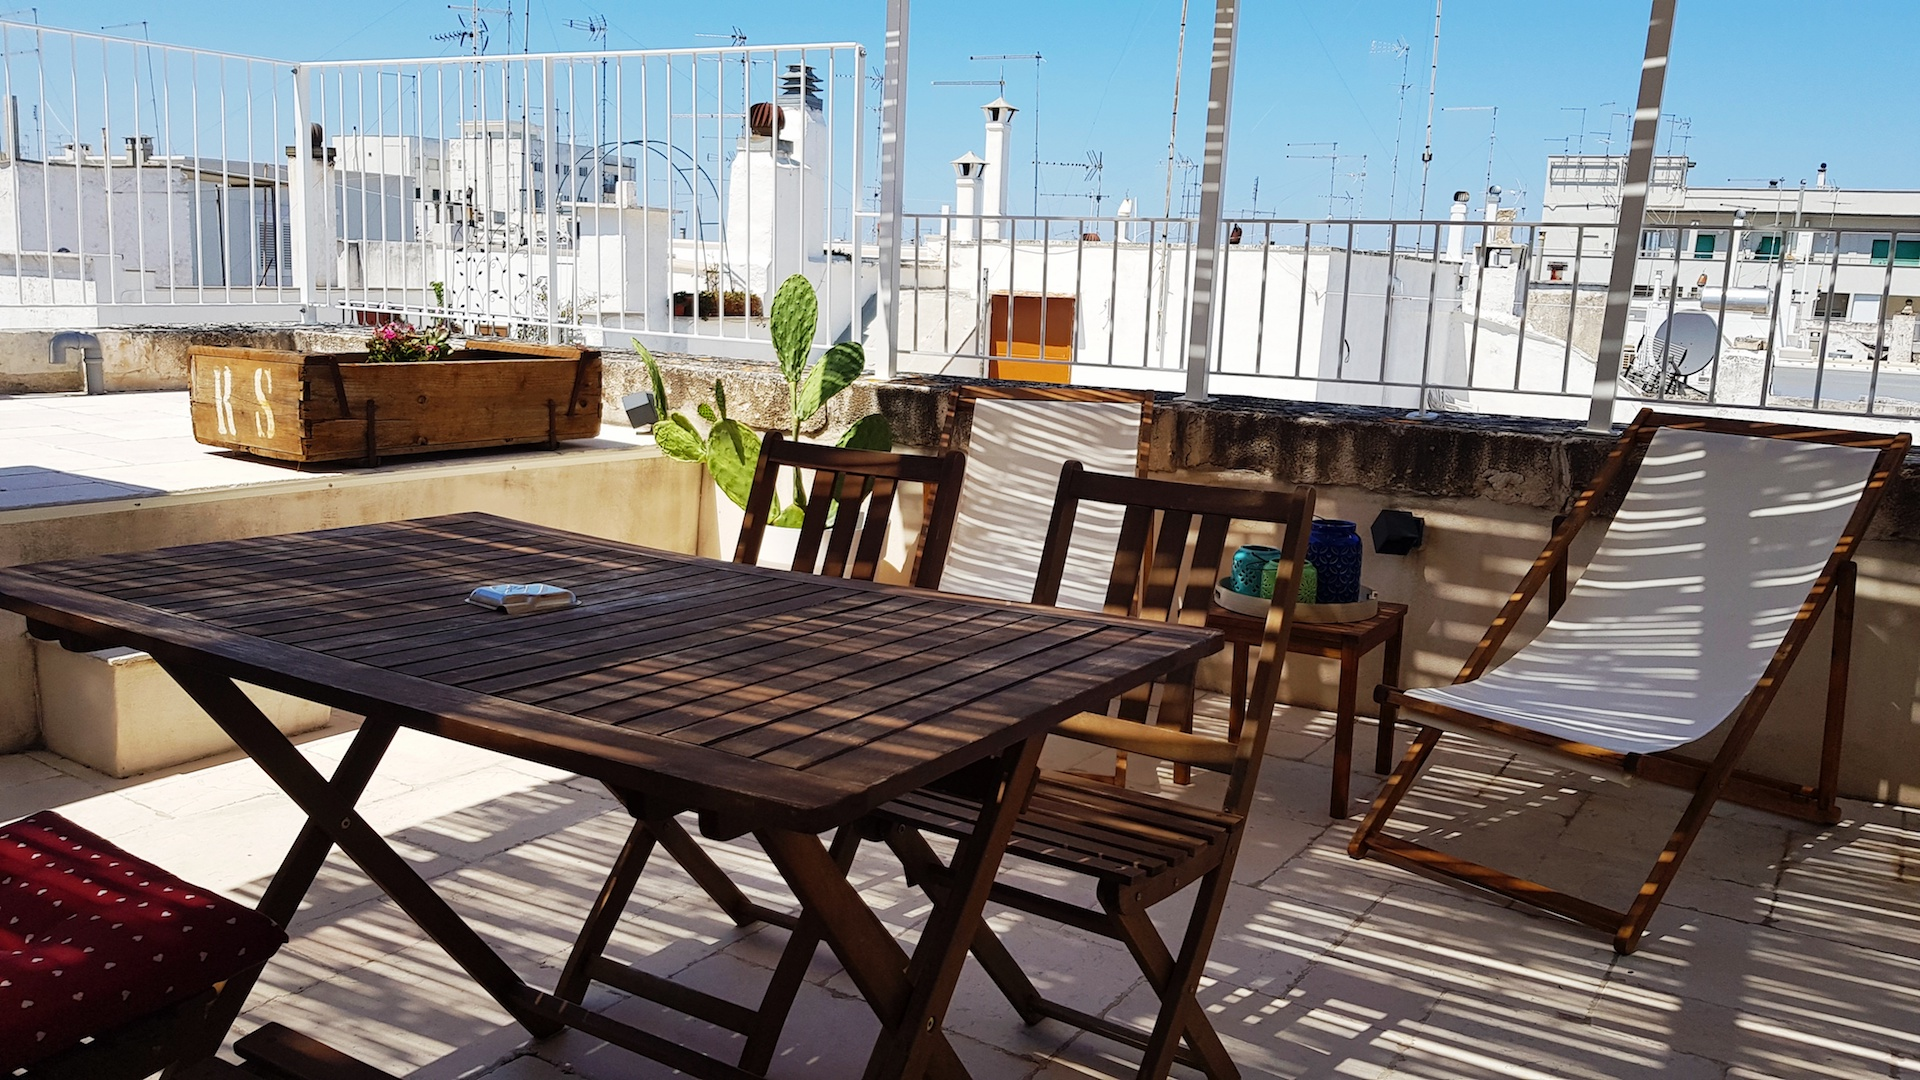 Lower rooftop terrace facilities at Casa Emma holiday rental home in Ostuni Puglia